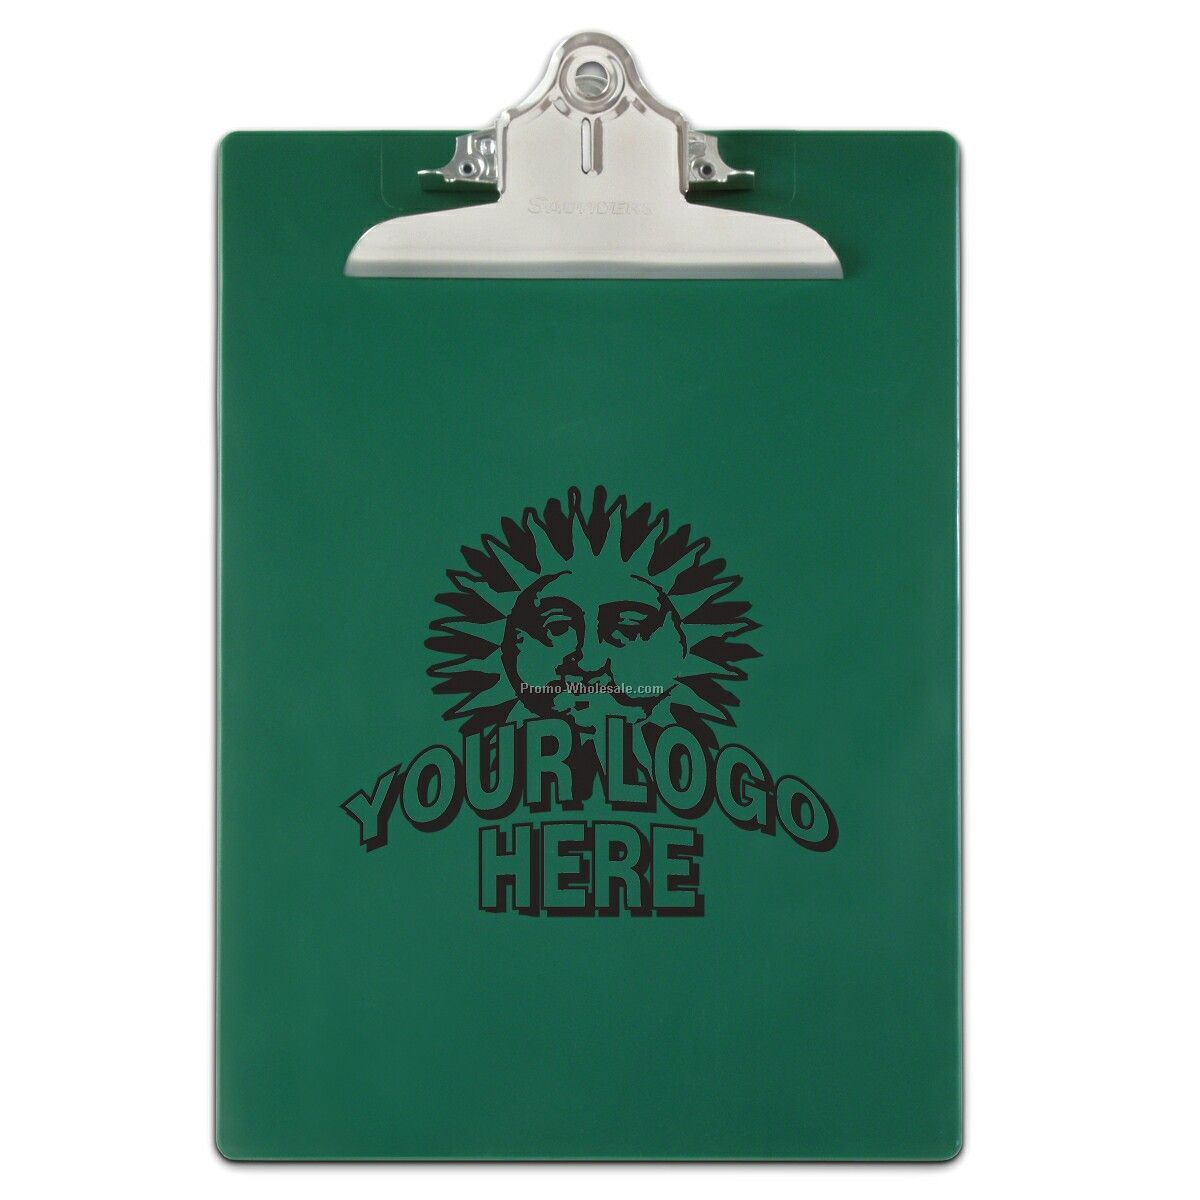 Antimicrobial Recycled Plastic Clipboard - Green